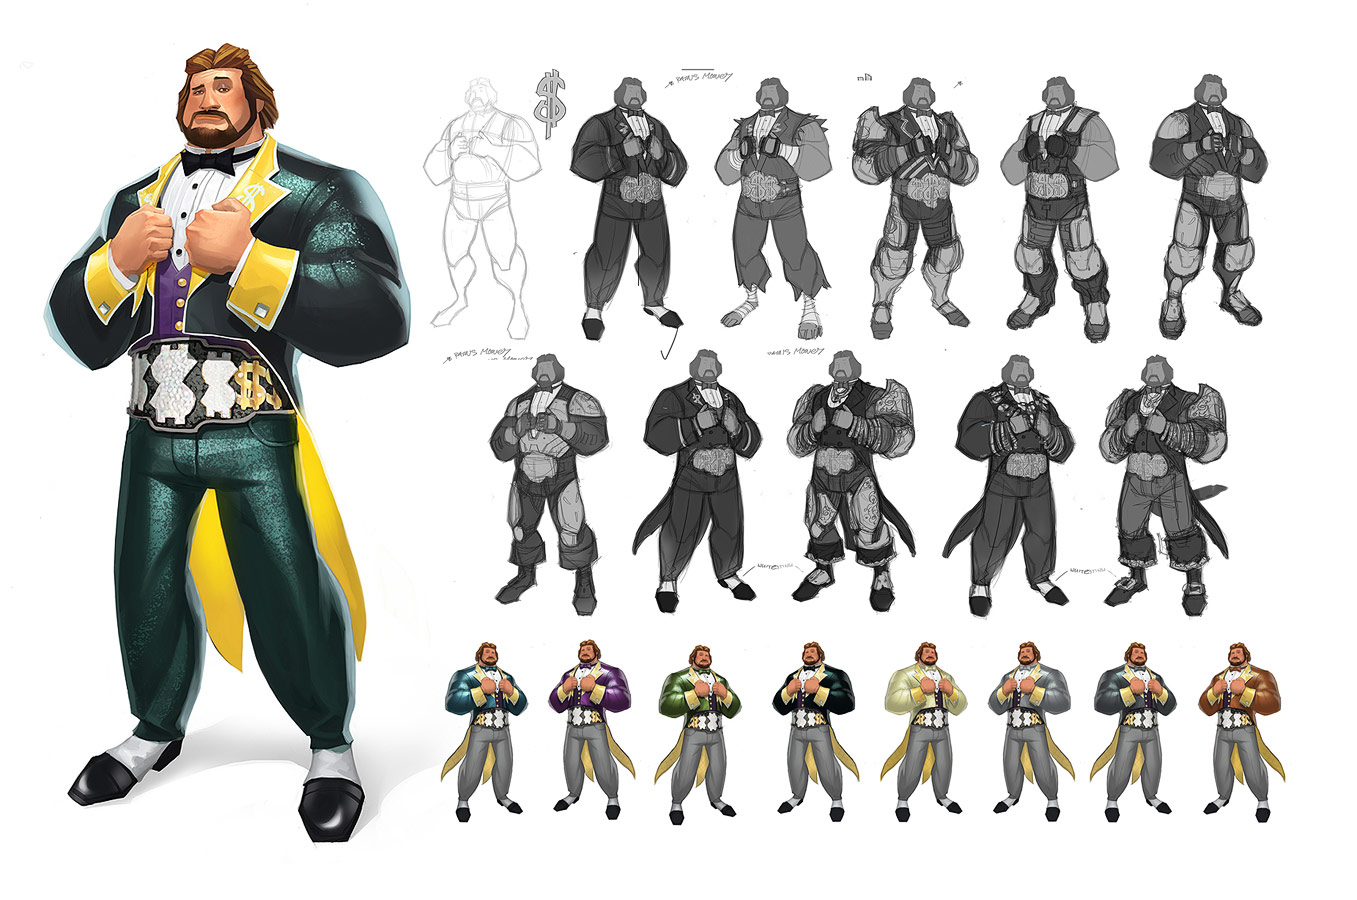 WWE Concept Art From A Cancelled Game Image 2